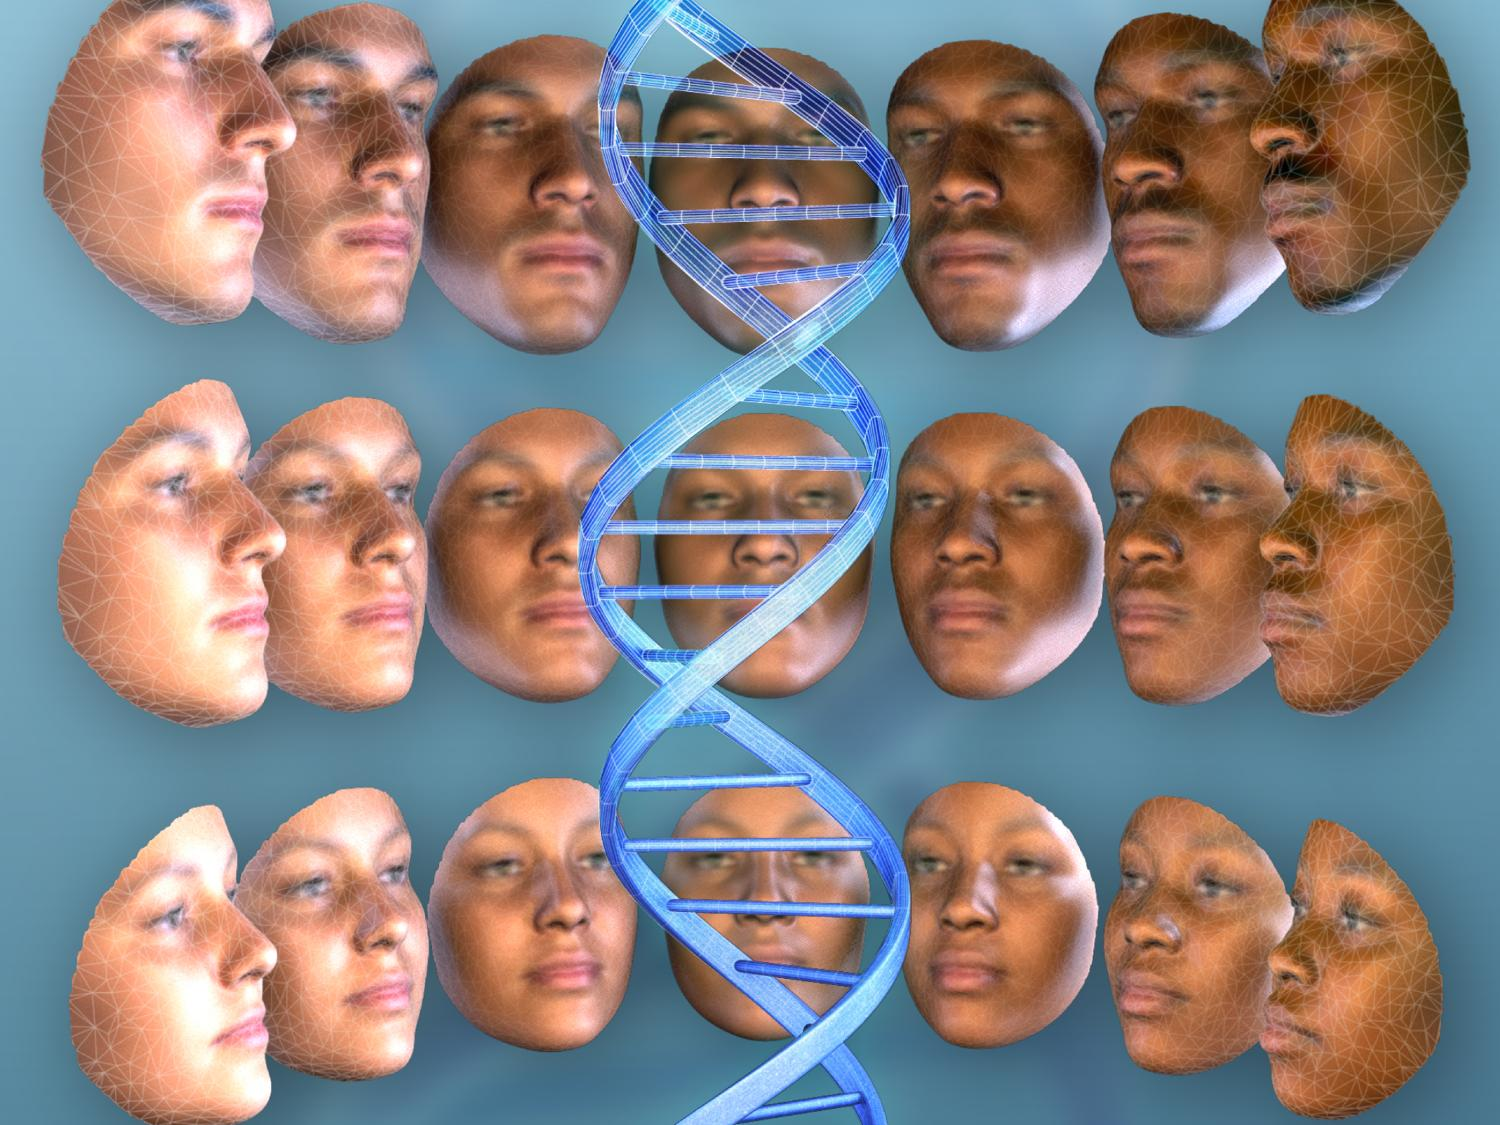 faces and DNA strand